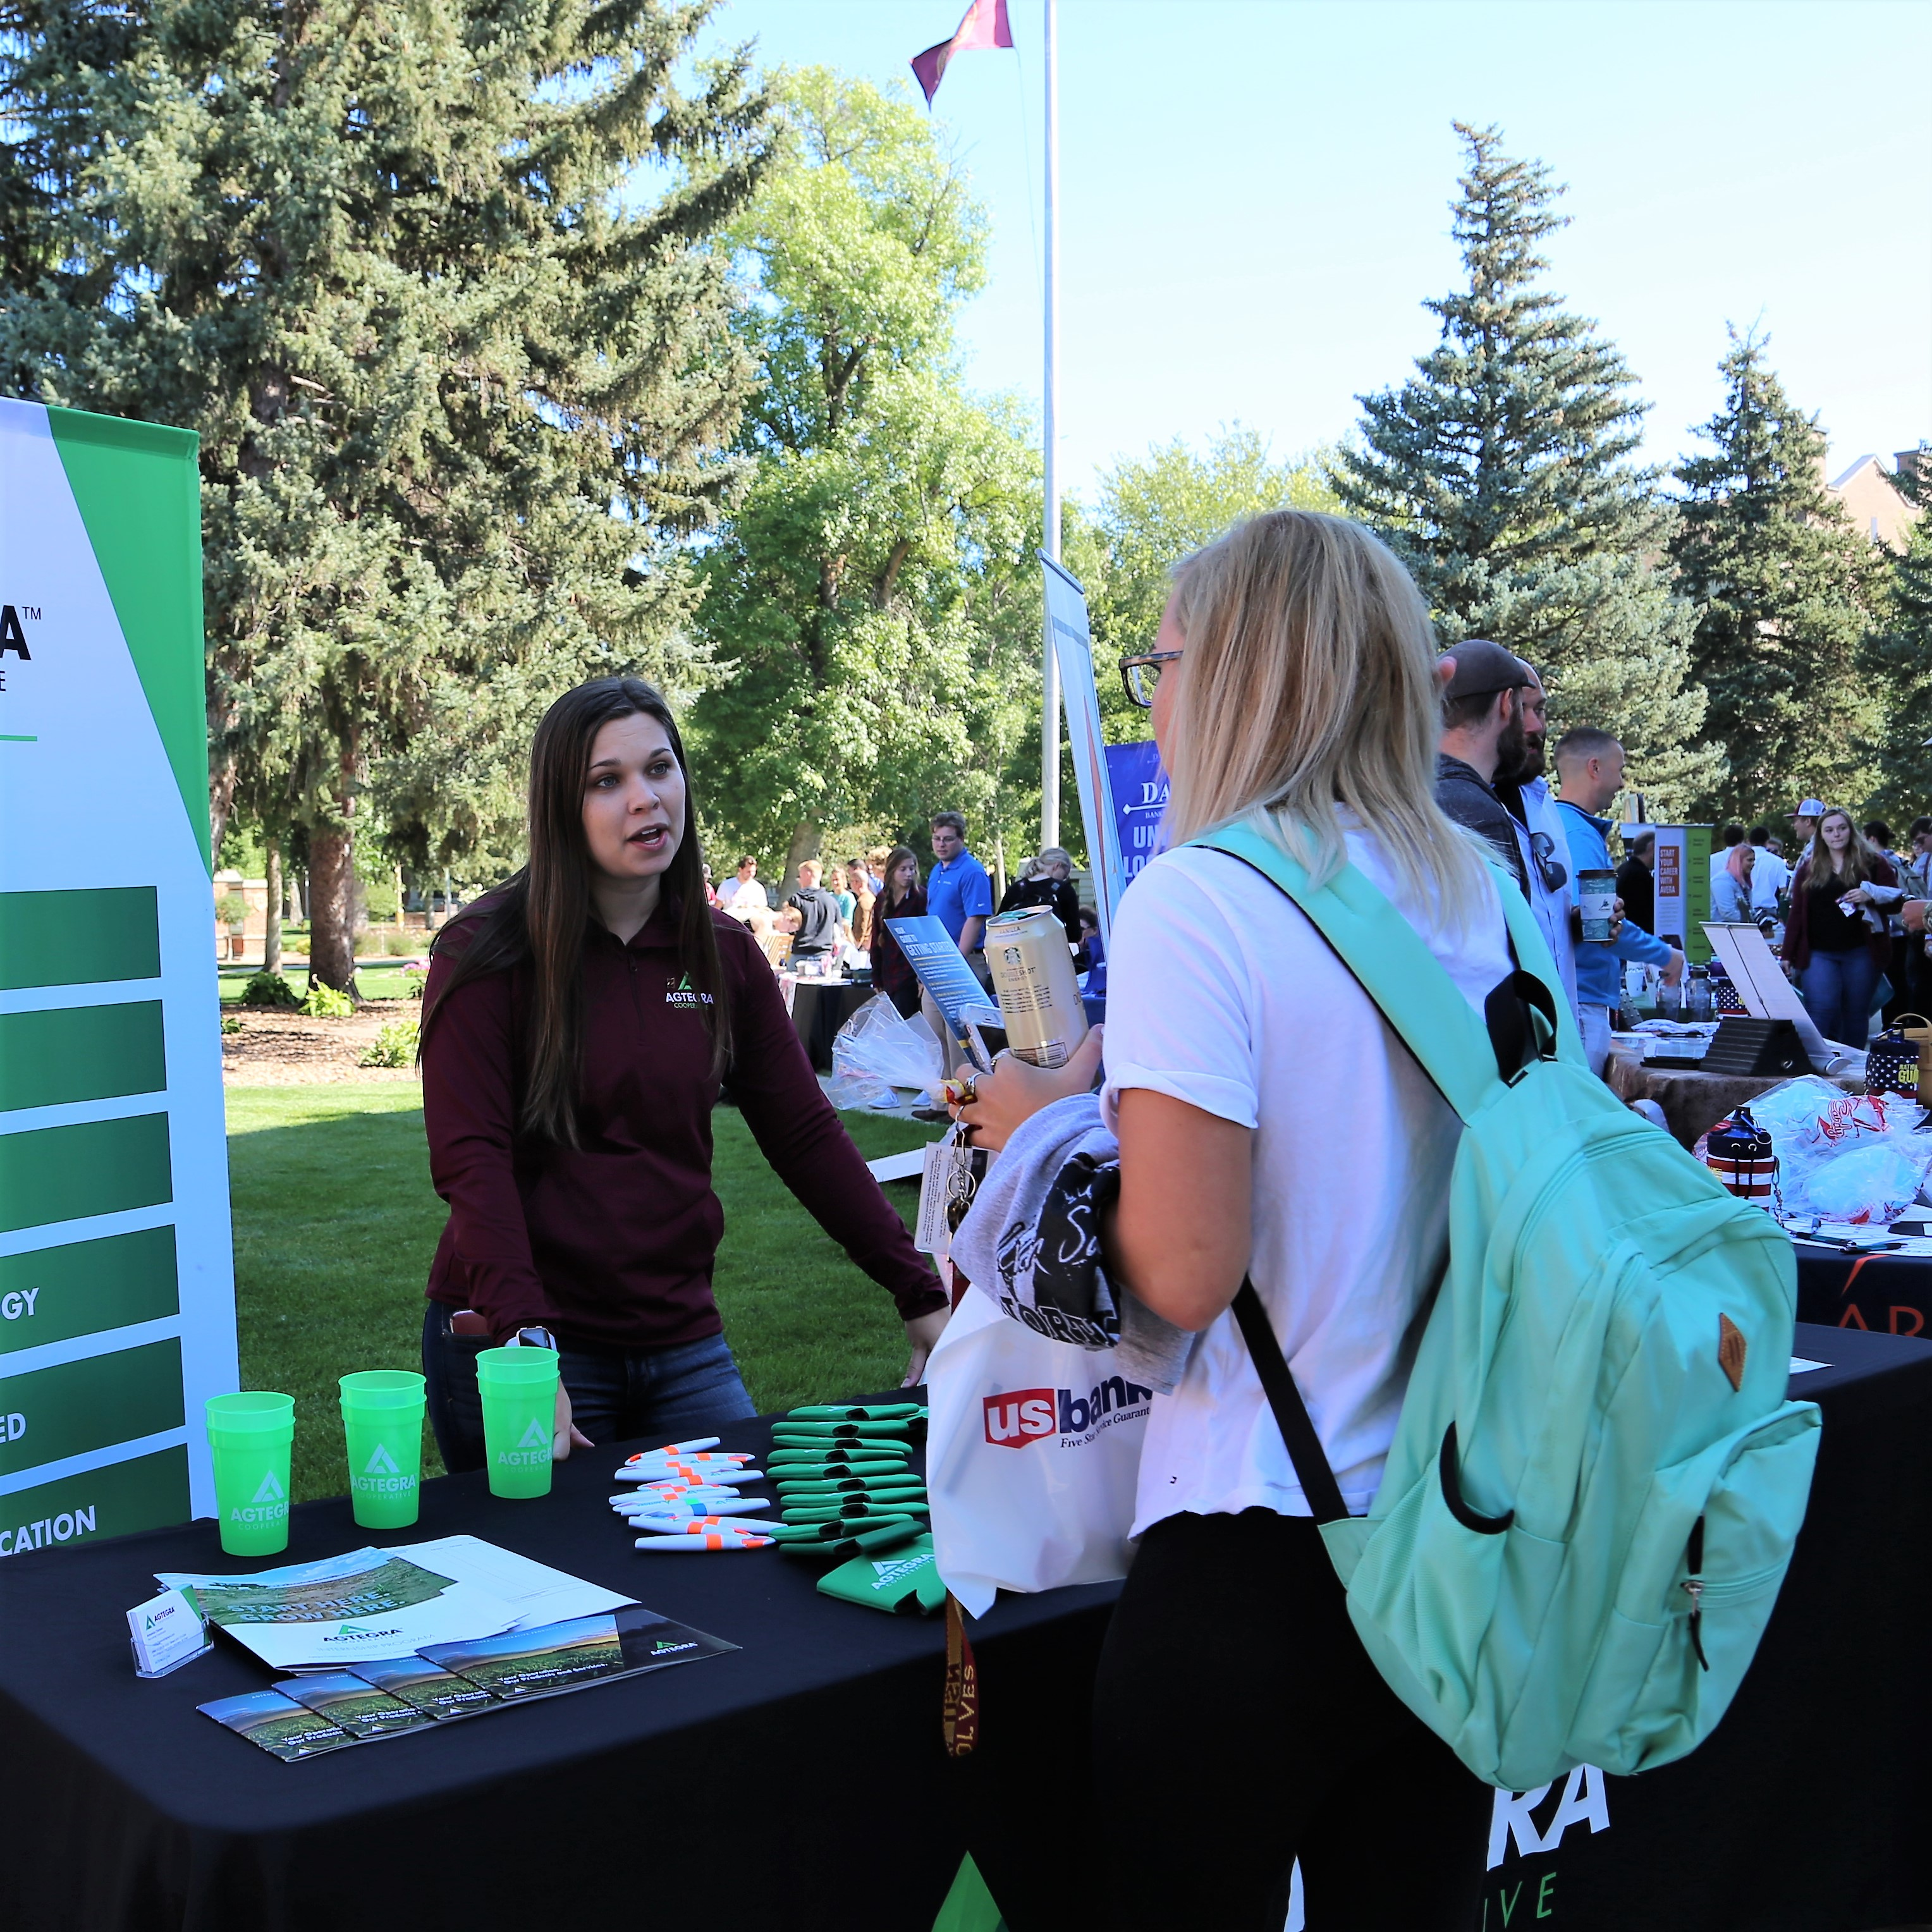 Student talking with employer at job fair on campus green